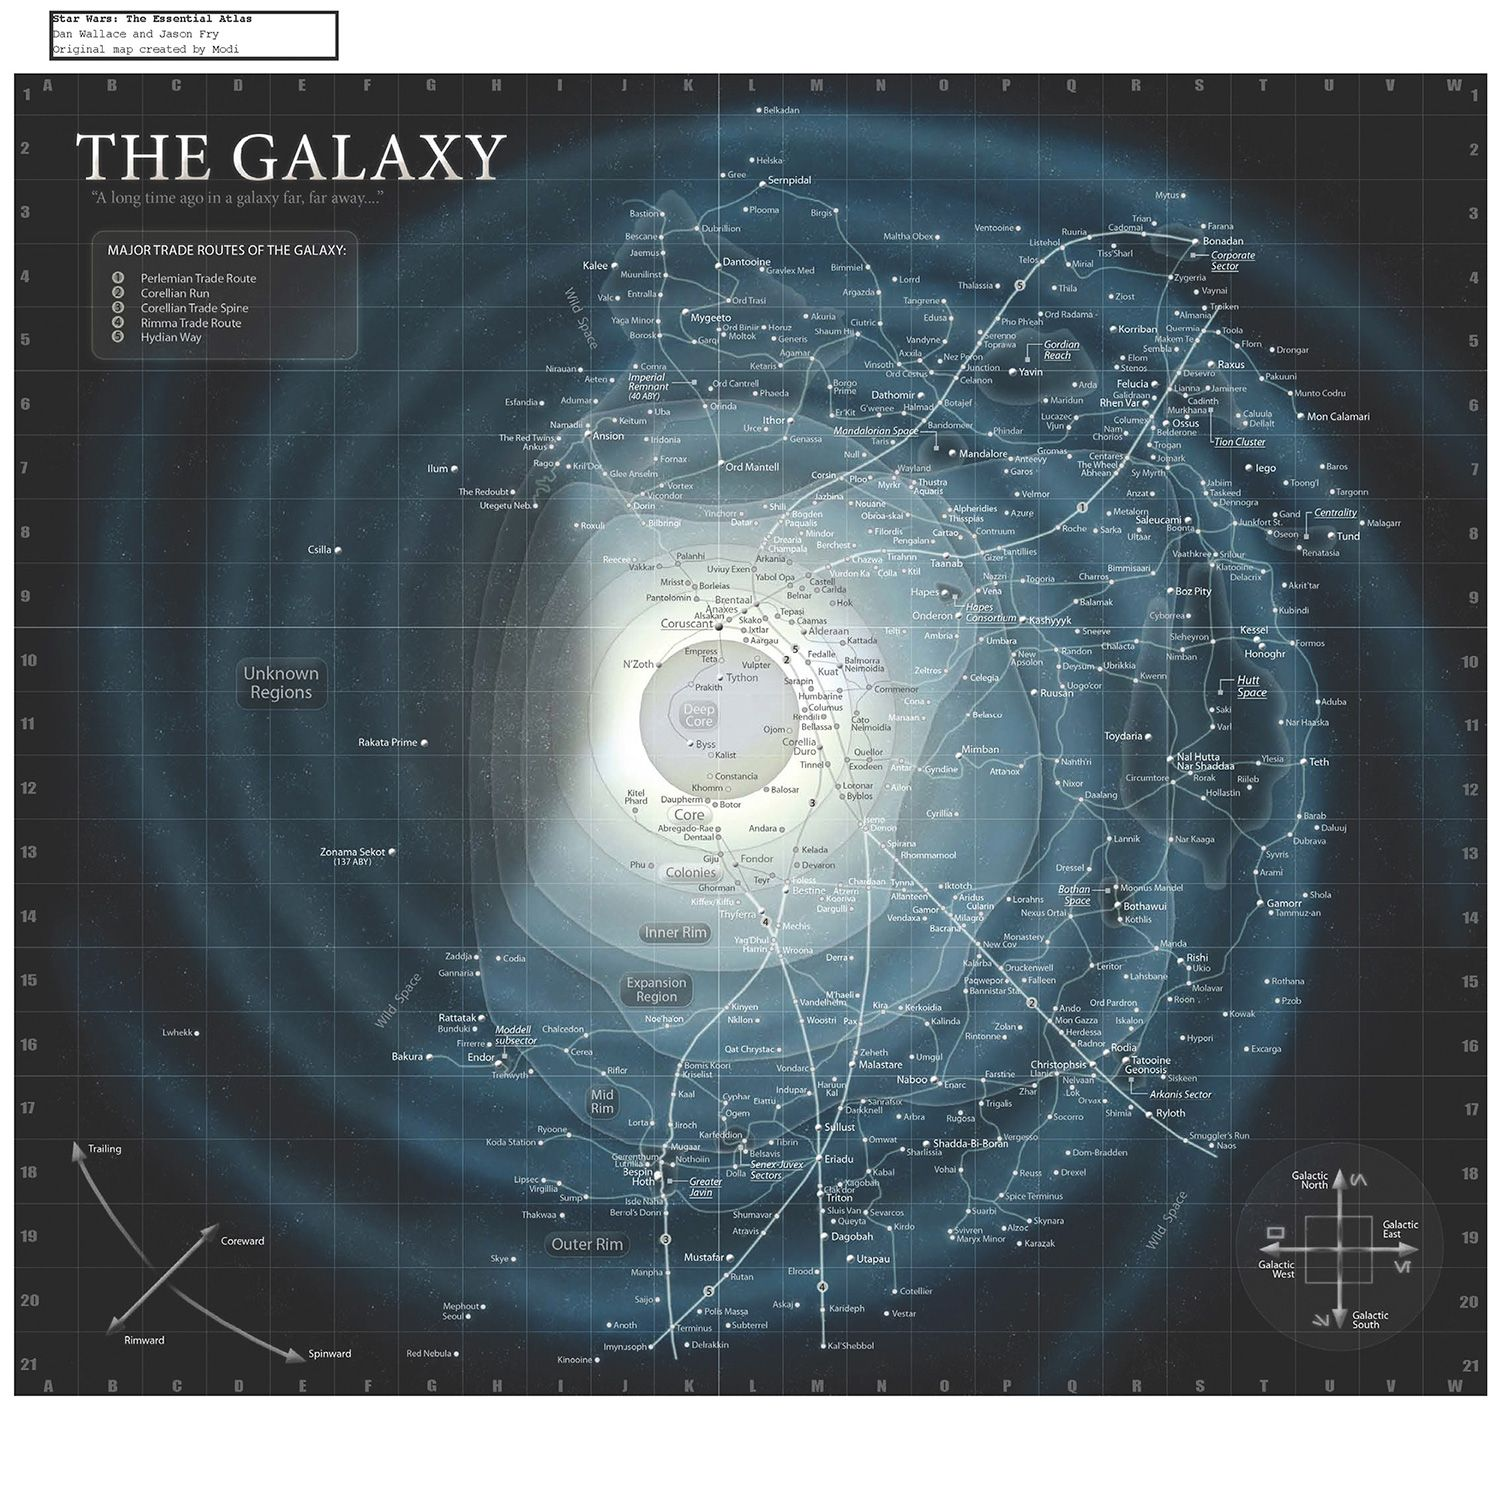 Map of the STAR WARS Galaxy  Collider